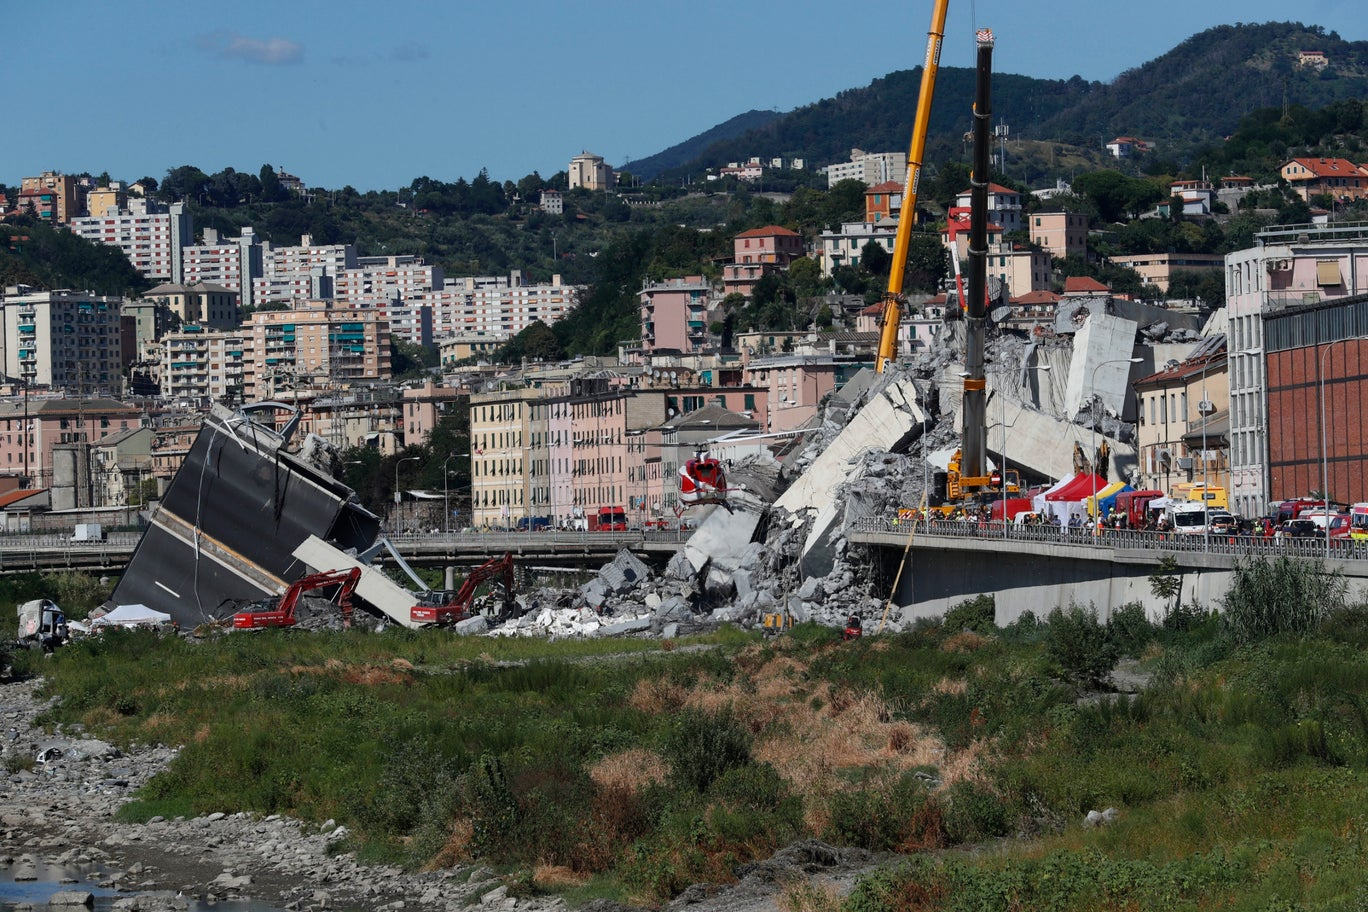 A bridge in Italay collapses due to ligtening